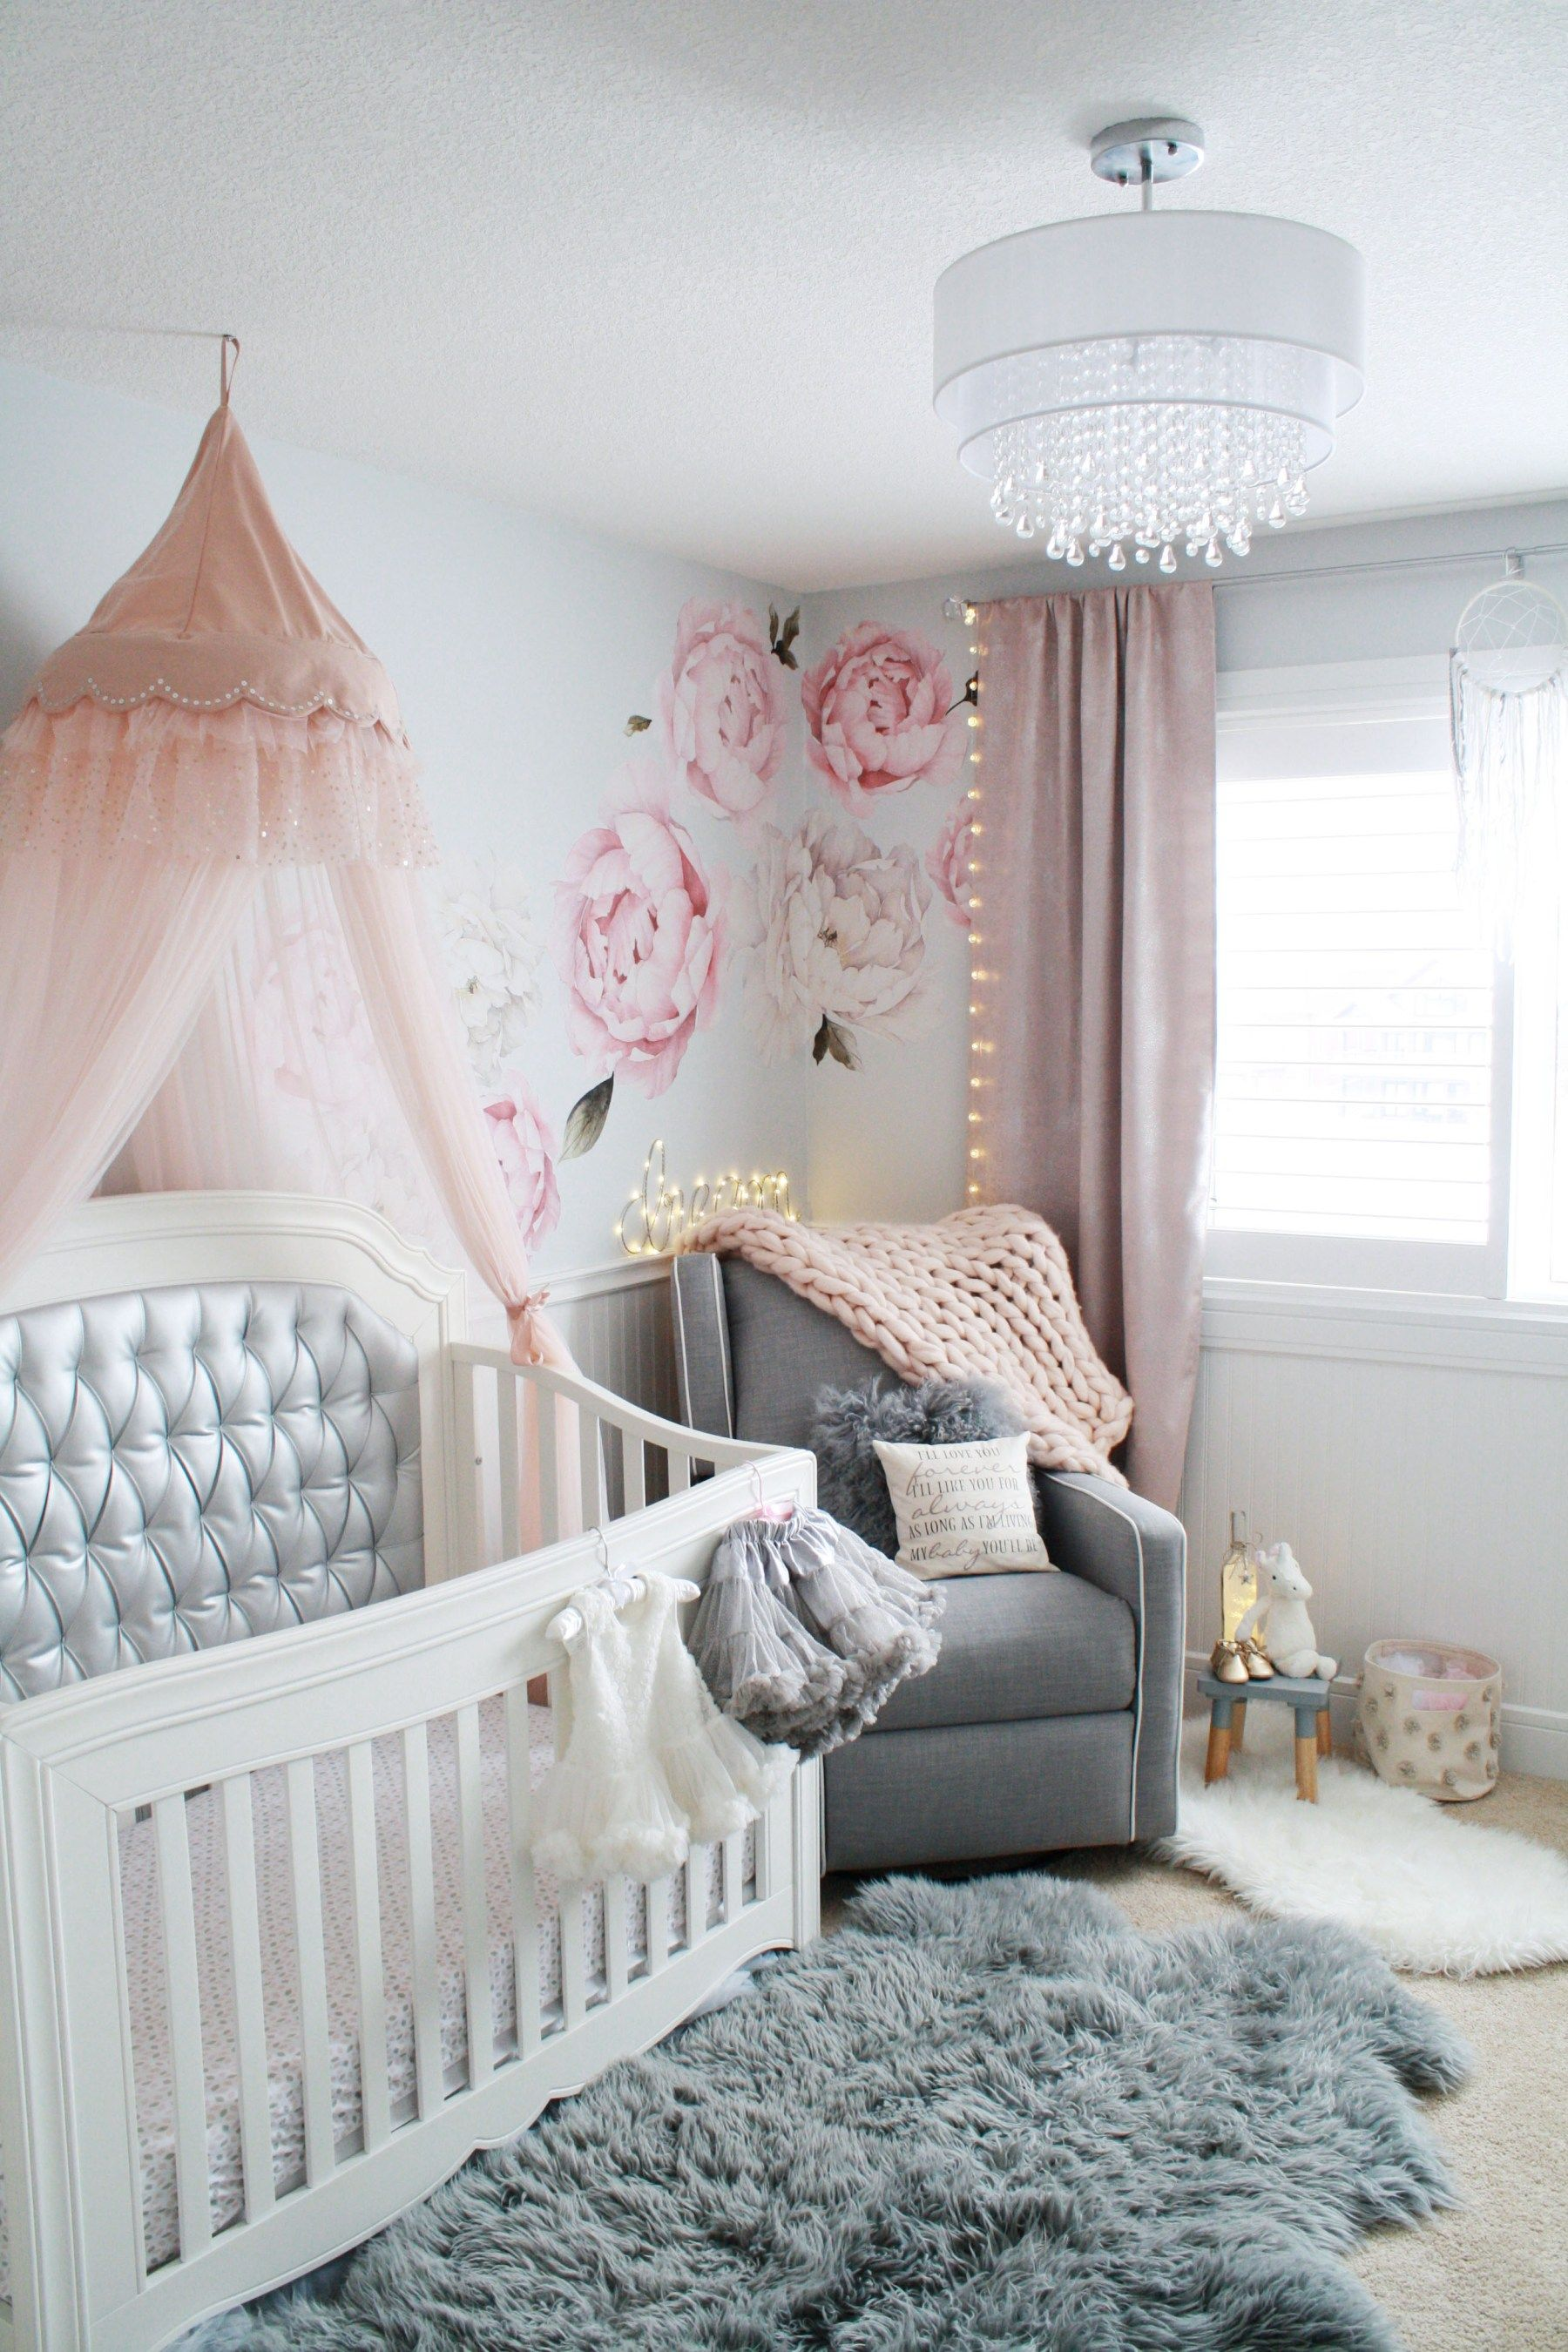 Baby Pink And Gray Nursery With Chandelier Tufted Crib Canopy Peony Wall Decals